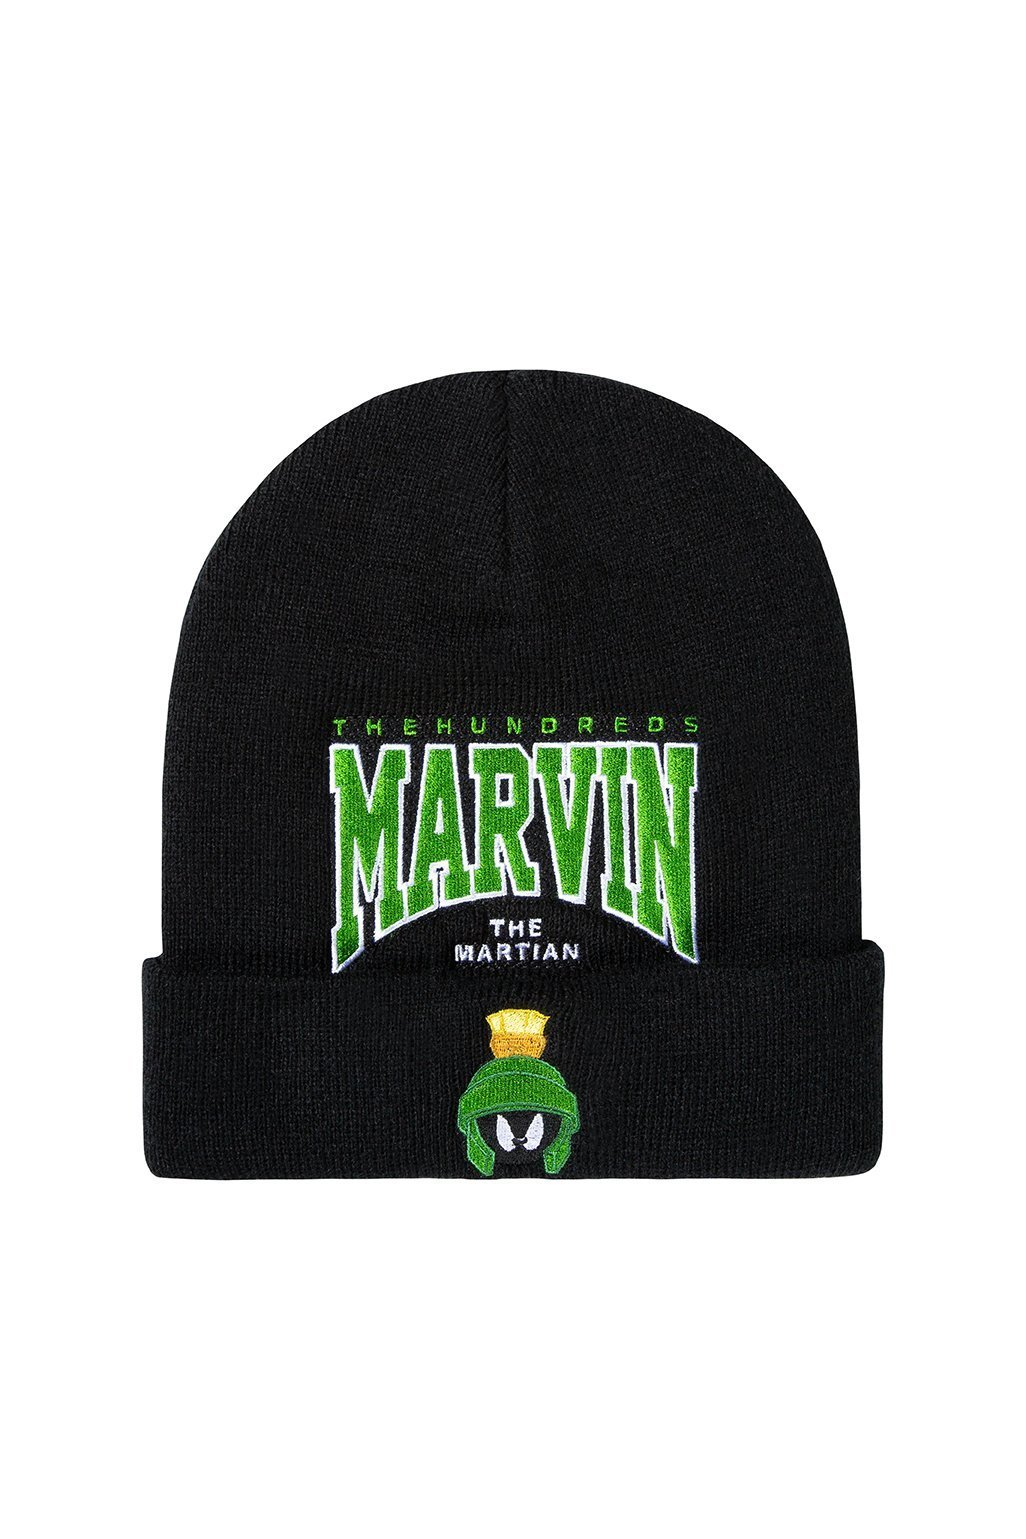 0975ae323 The Hundreds: The Hundreds X Looney Tunes: Marvin the Martian ...